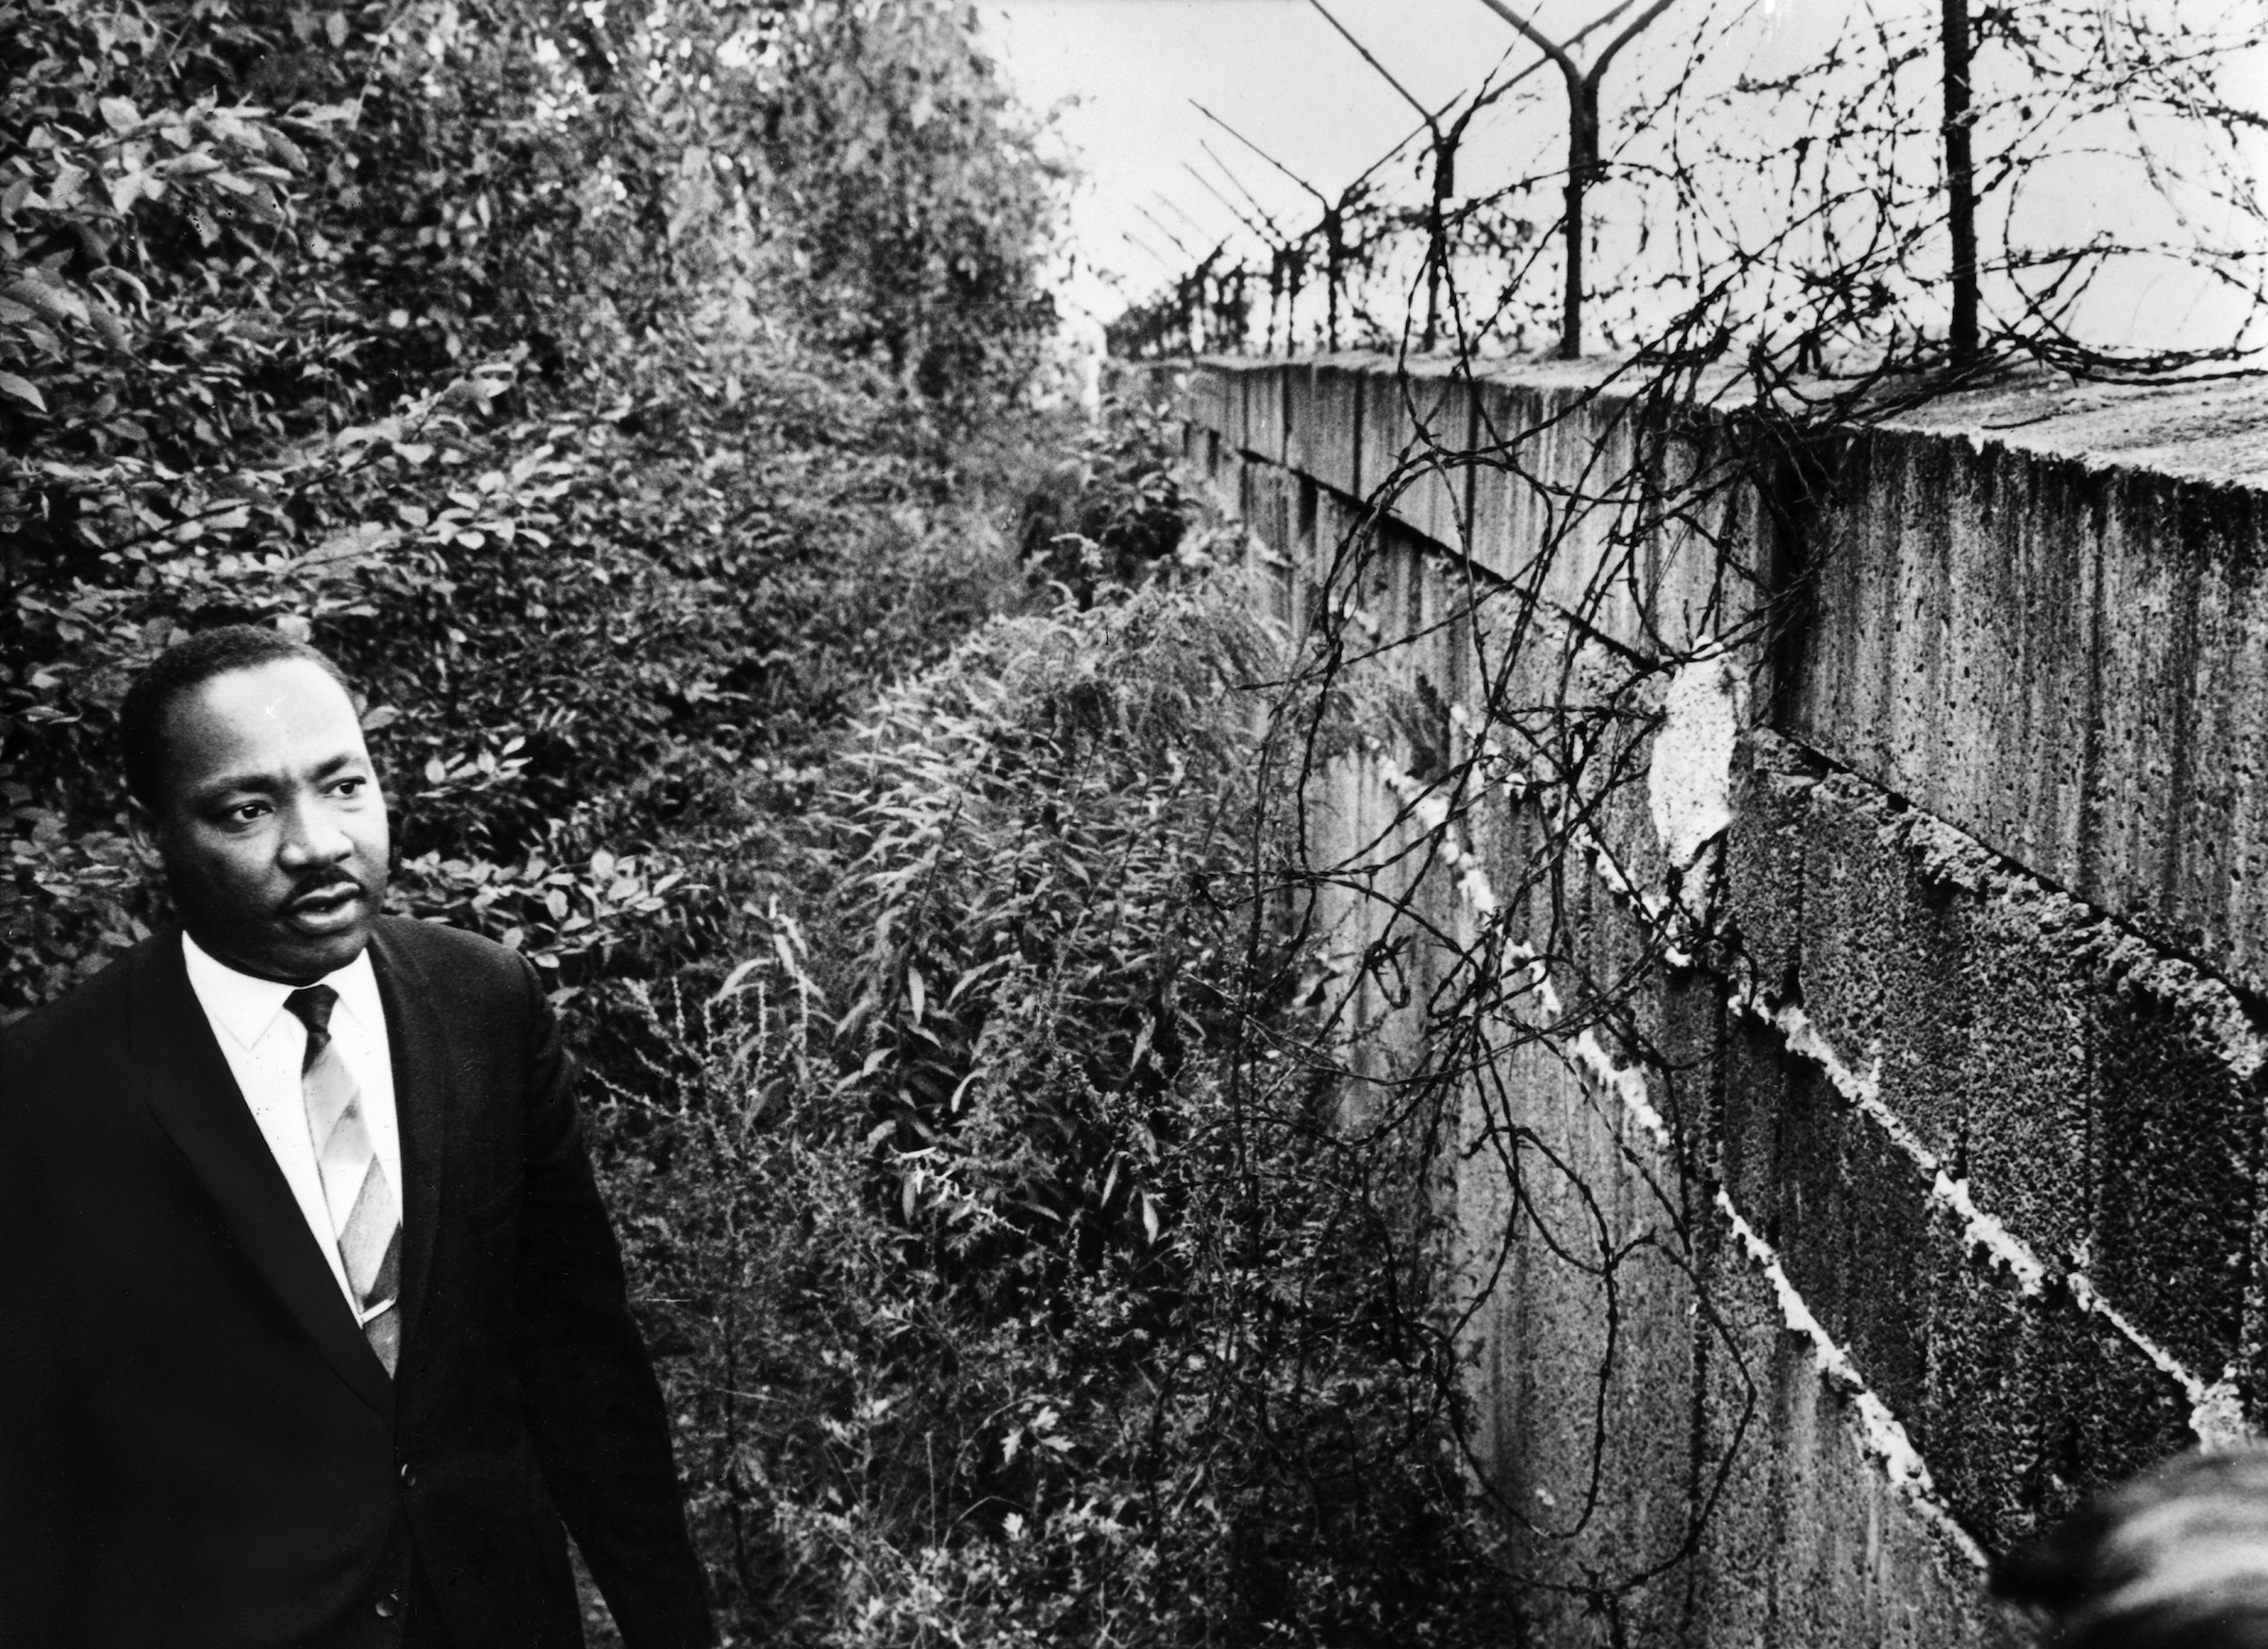 Martin Luther King at the Berlin Wall in 1964